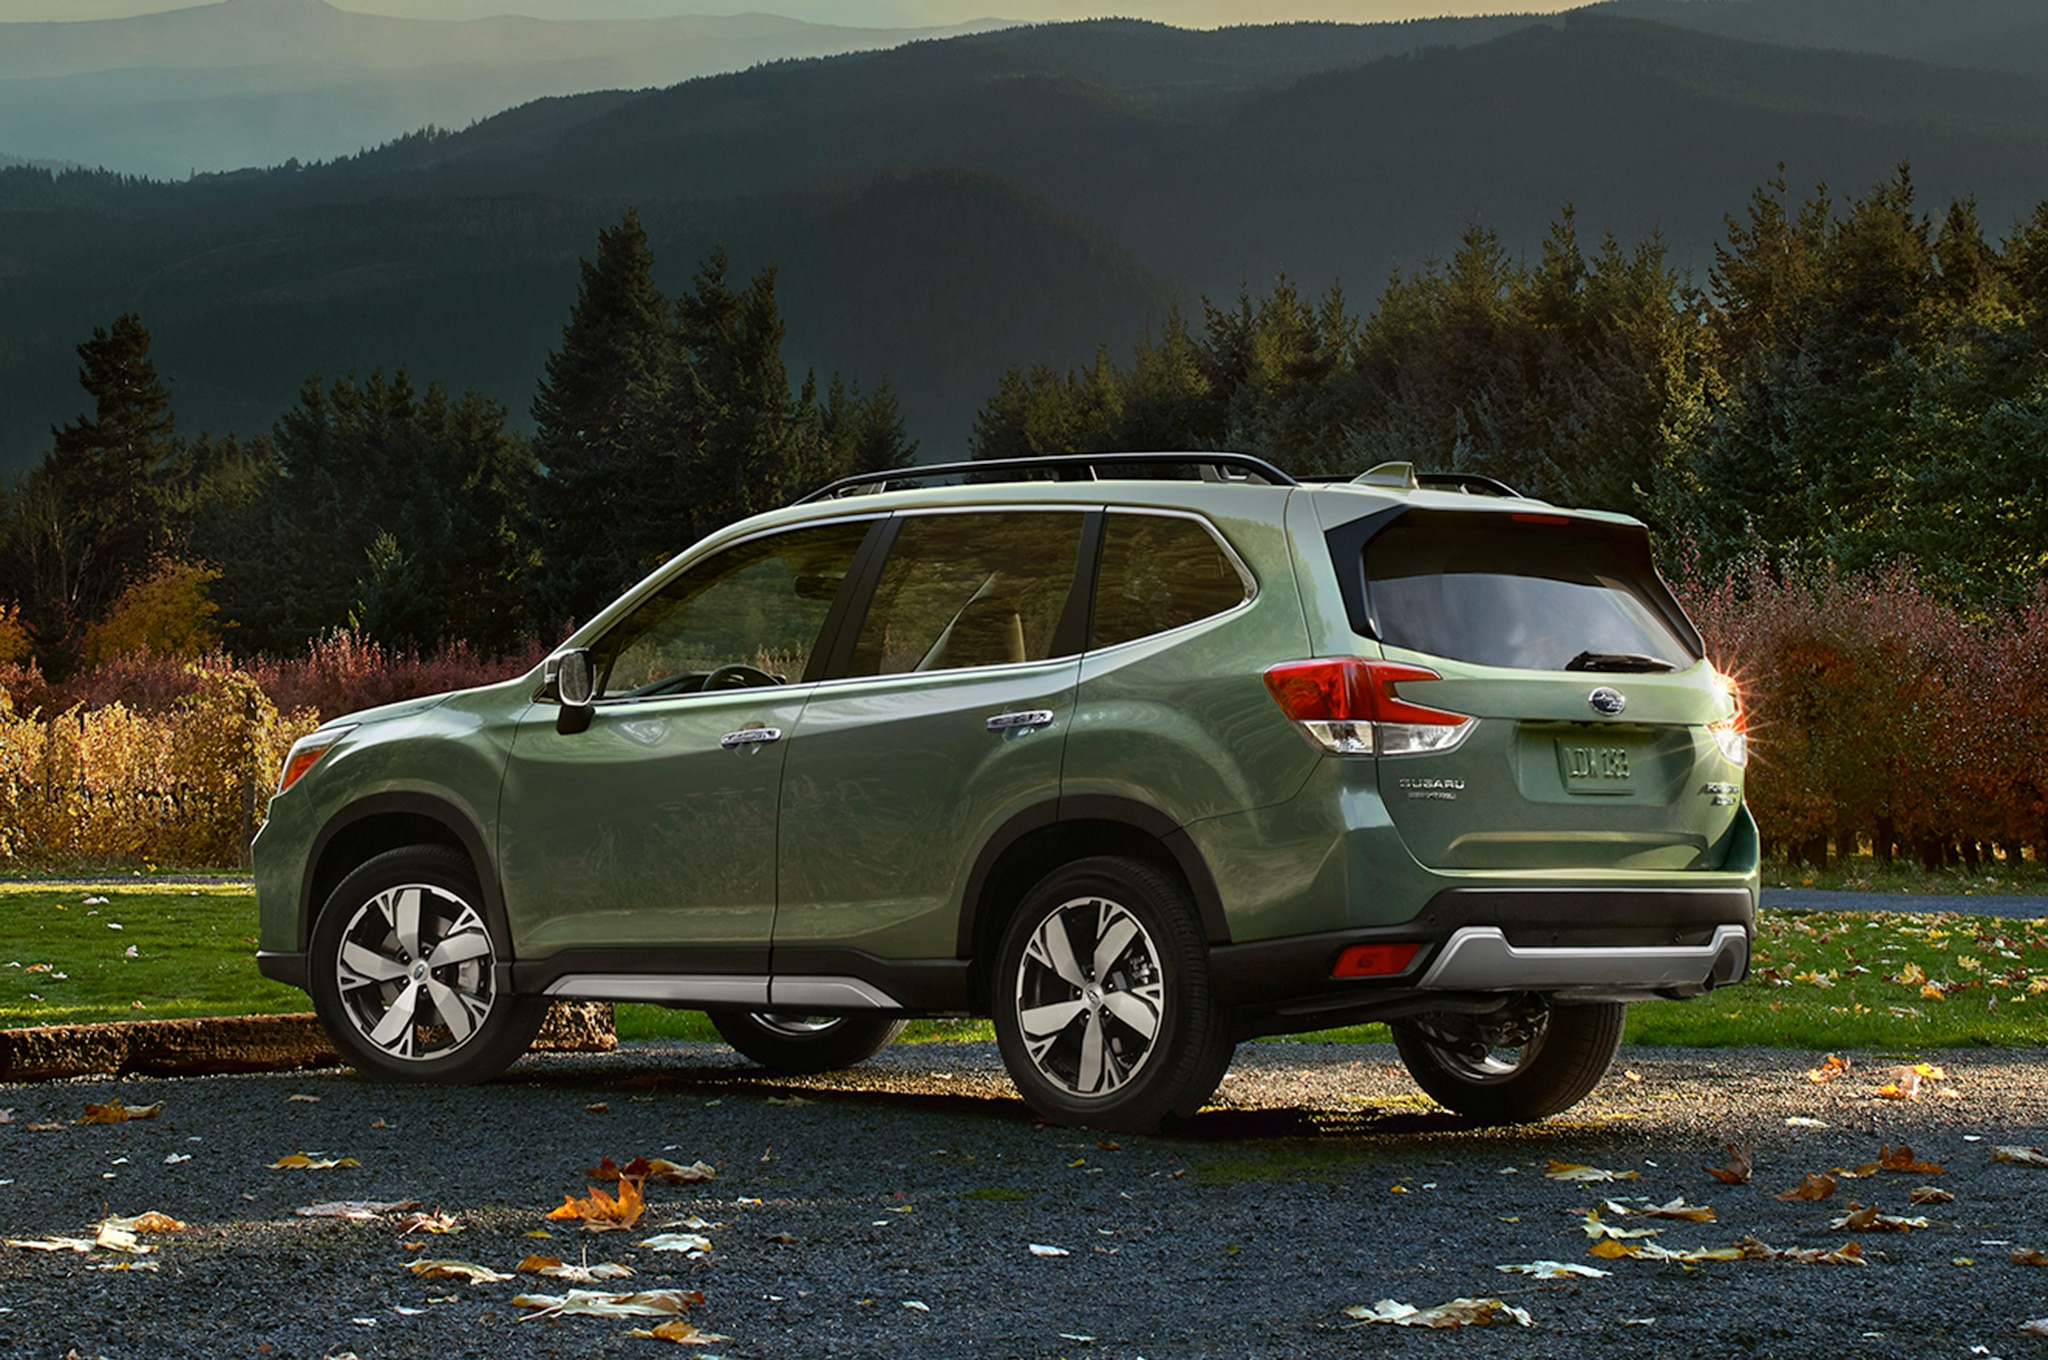 2019 Subaru Forester Gets Freshened With New Flavors